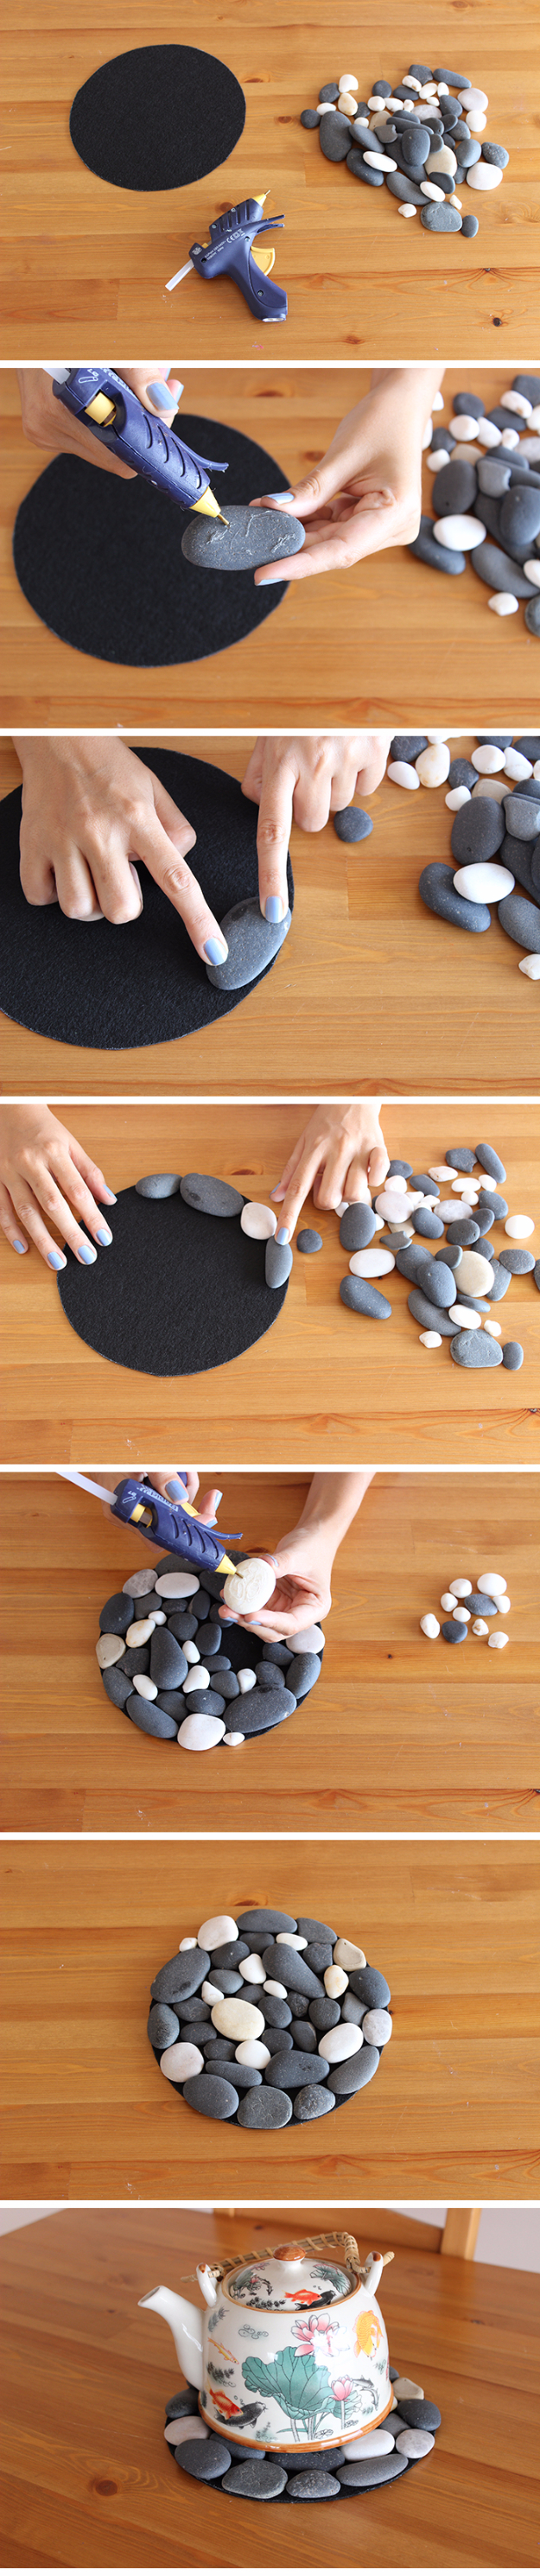 Pebble and Stone and Rock Crafts - Pebble Coasters - DIY Ideas Using Rocks, Stones and Pebble Art - Mosaics, Craft Projects, Home Decor, Furniture and DIY Gifts You Can Make On A Budget #crafts